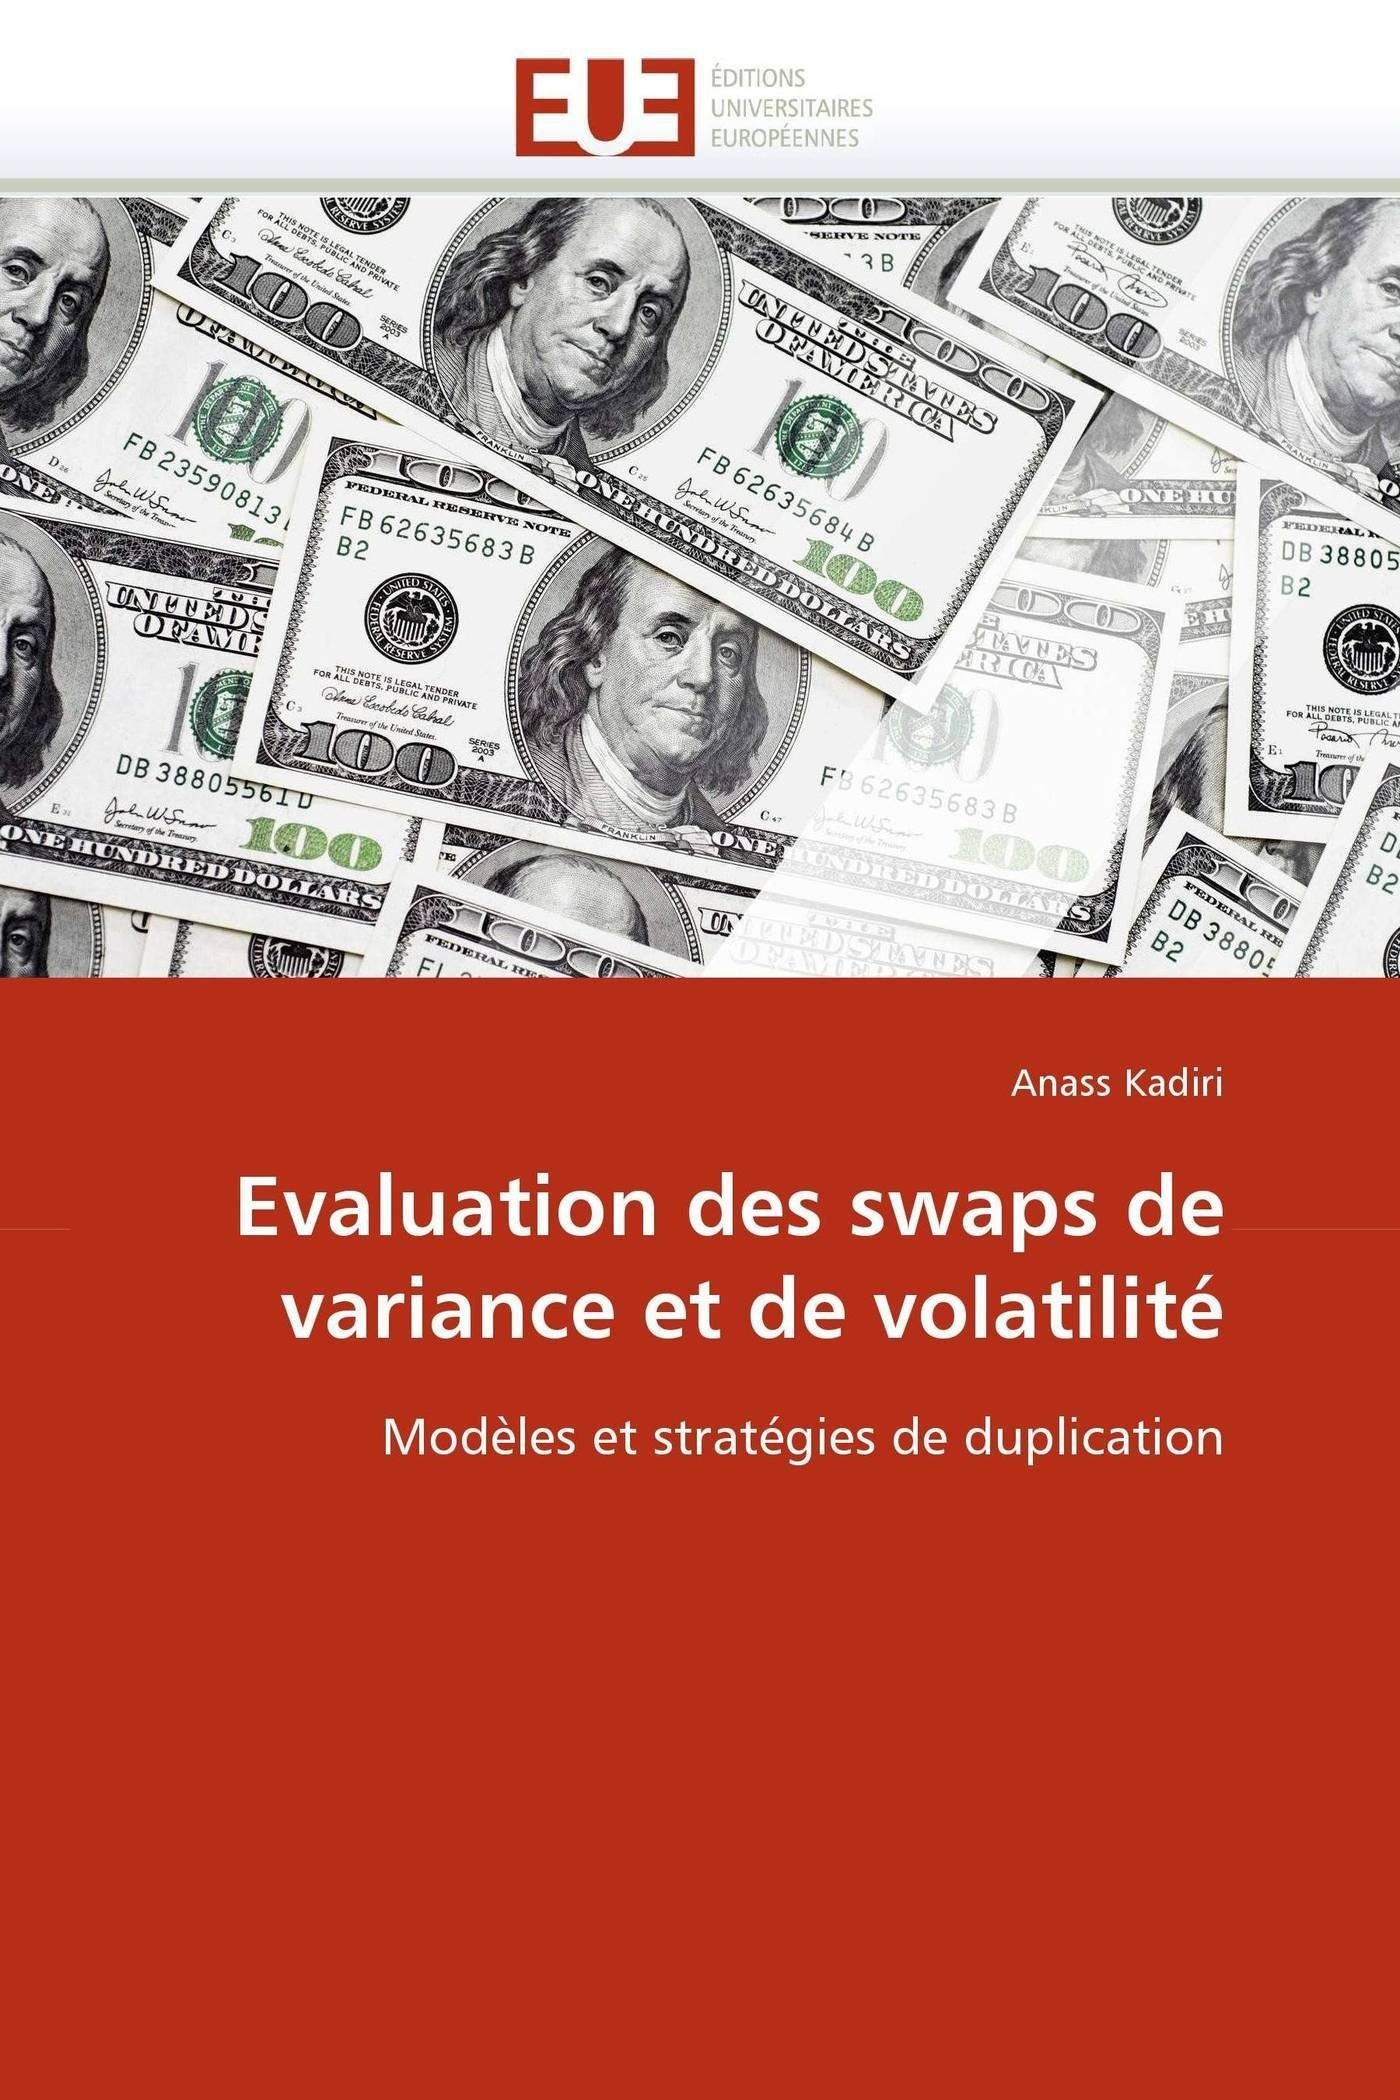 évaluation des sites de trading)